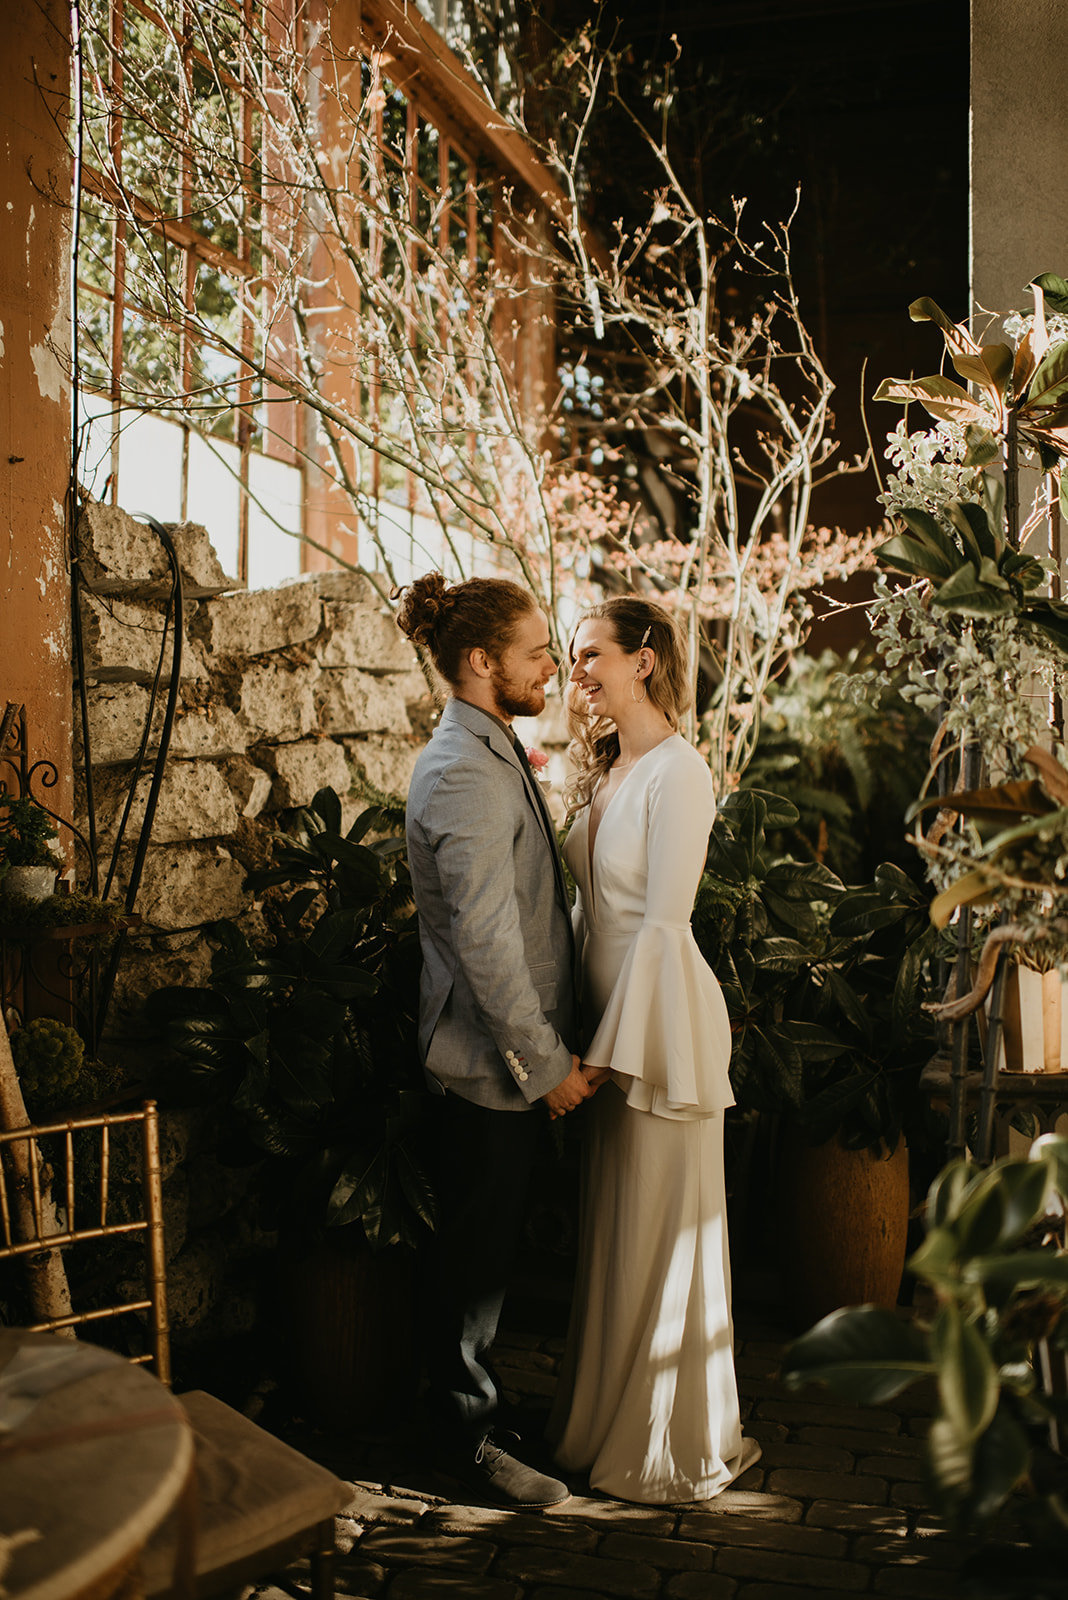 Britty + Beau - Elopement - The Ruins_ Seattle_ WA - Kamra Fuller Photography - Runaway With Me Elopement Collective-158